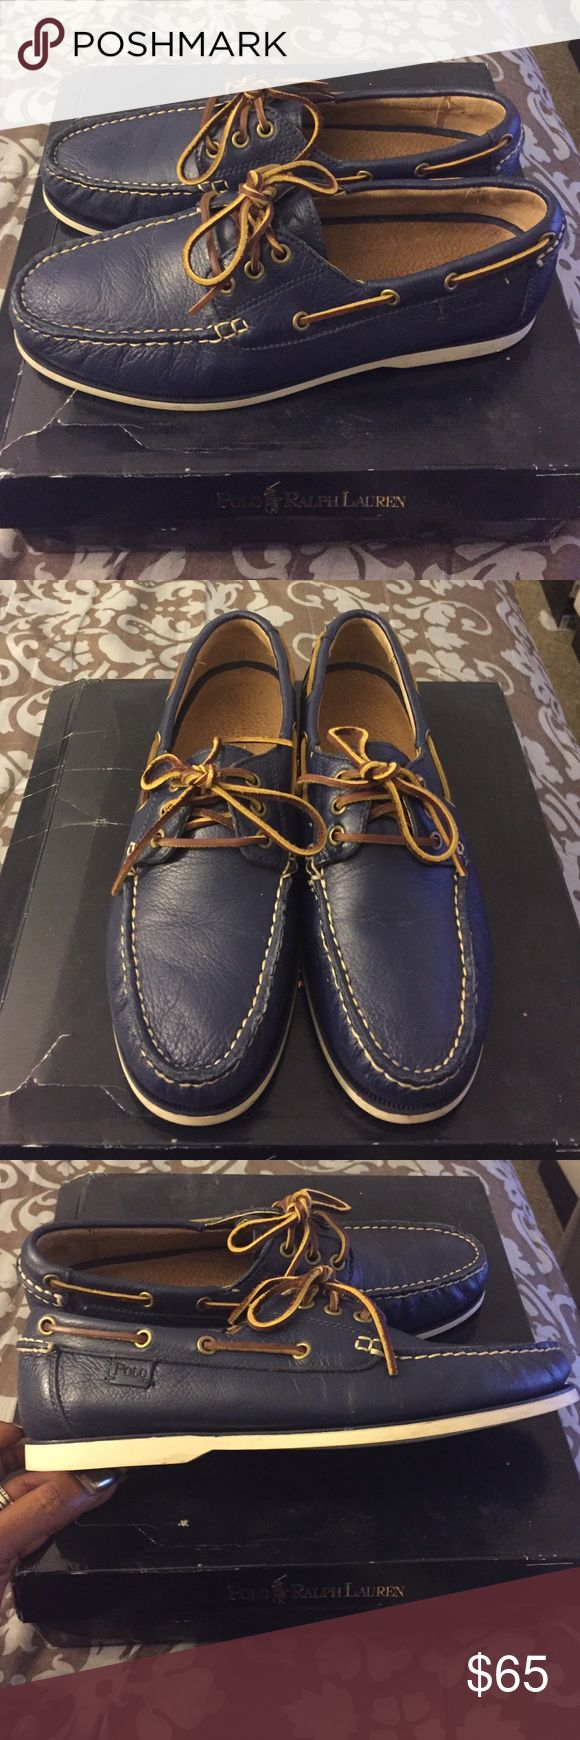 Ralph Lauren Polo Boat Shoes Leathers Ralph Lauren Polo Boat Shoes, Navy Blue Leather, Brown Leather ShoeStrings...These shoes are in pristine condition, no scratches, scrapes or scuffs, absolutely no wear on these  babies ‼️, box a little beat up Polo by Ralph Lauren Shoes Boat Shoes